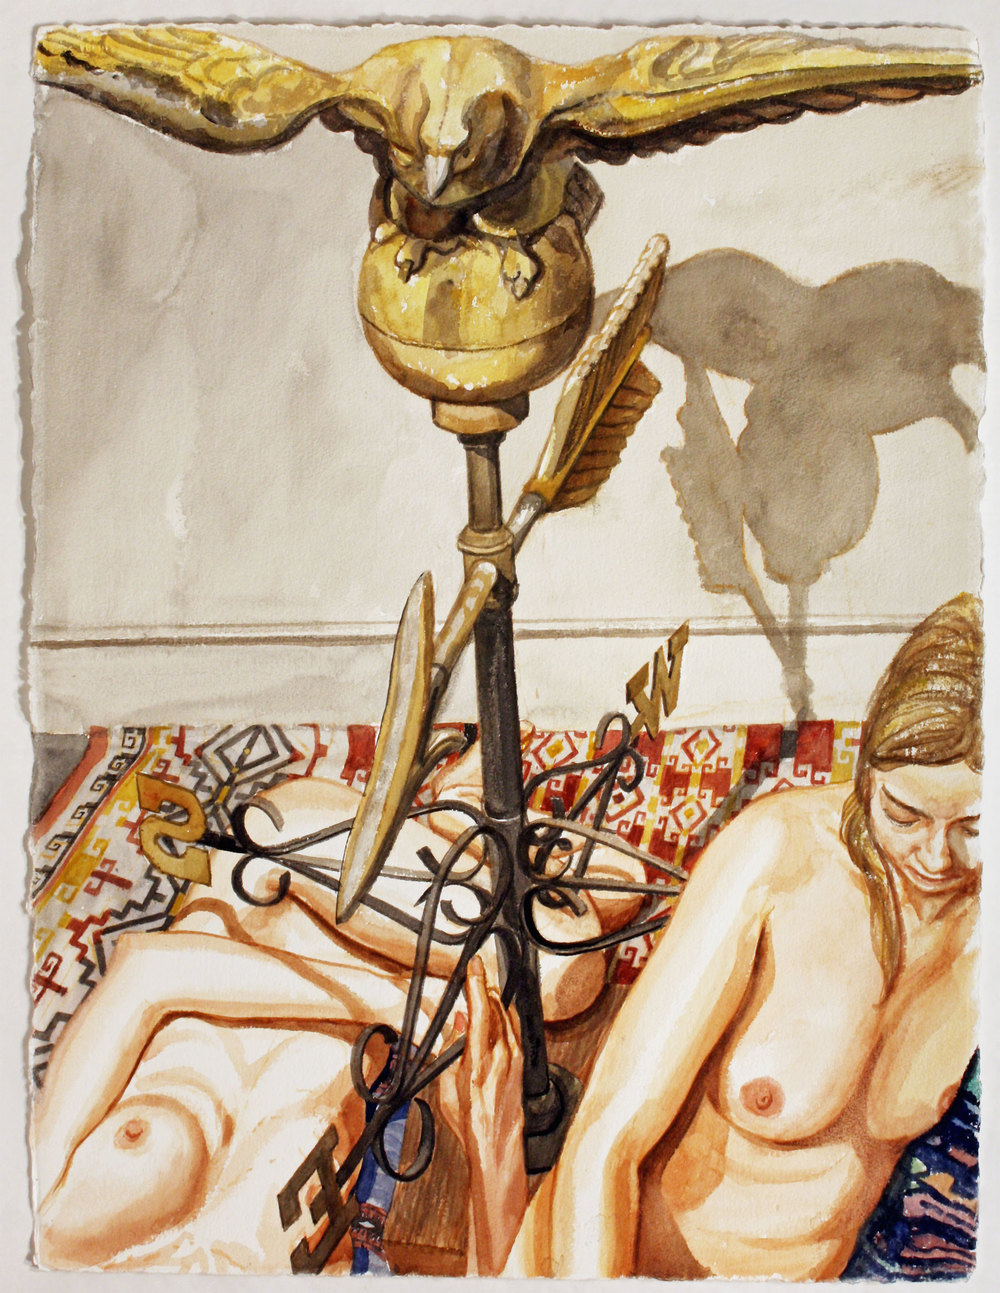 TWO MODELS WITH EAGLE WEATHERVANE , 2007 Watercolor on paper 30 x 22 1/2 inches